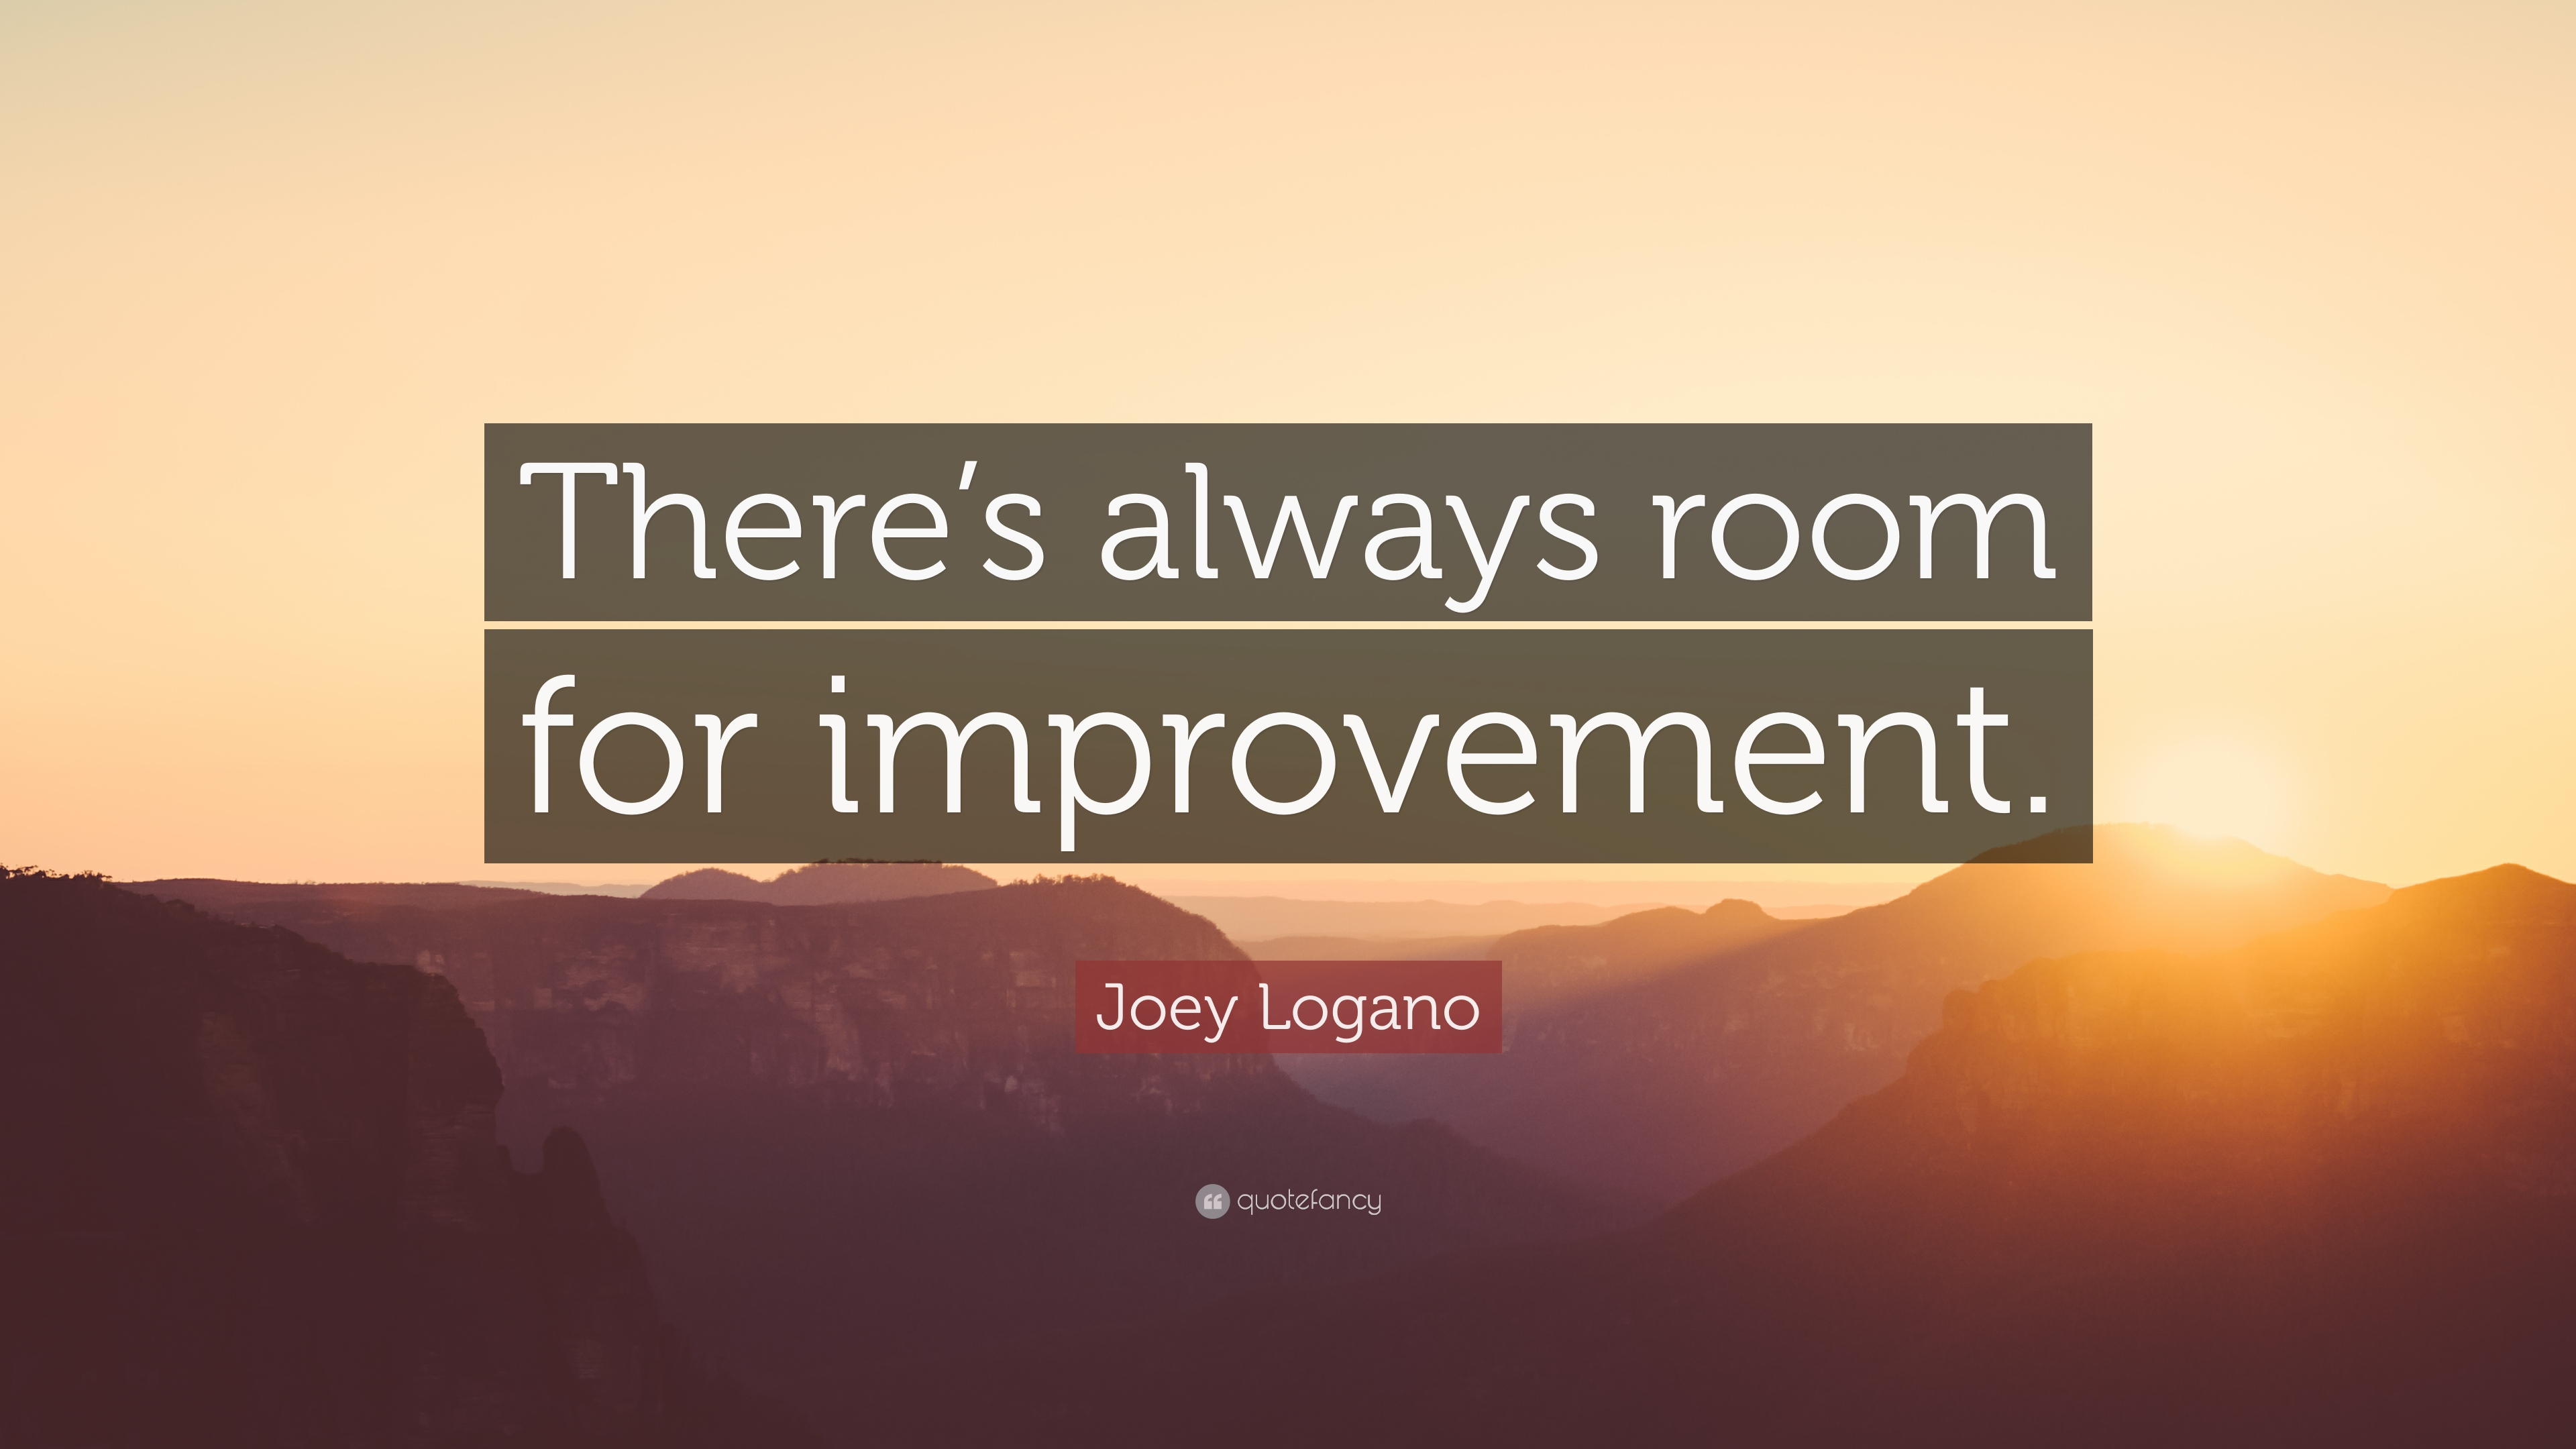 Self Improvement Quotes Gorgeous Self Improvement Quotes 40 Wallpapers  Quotefancy